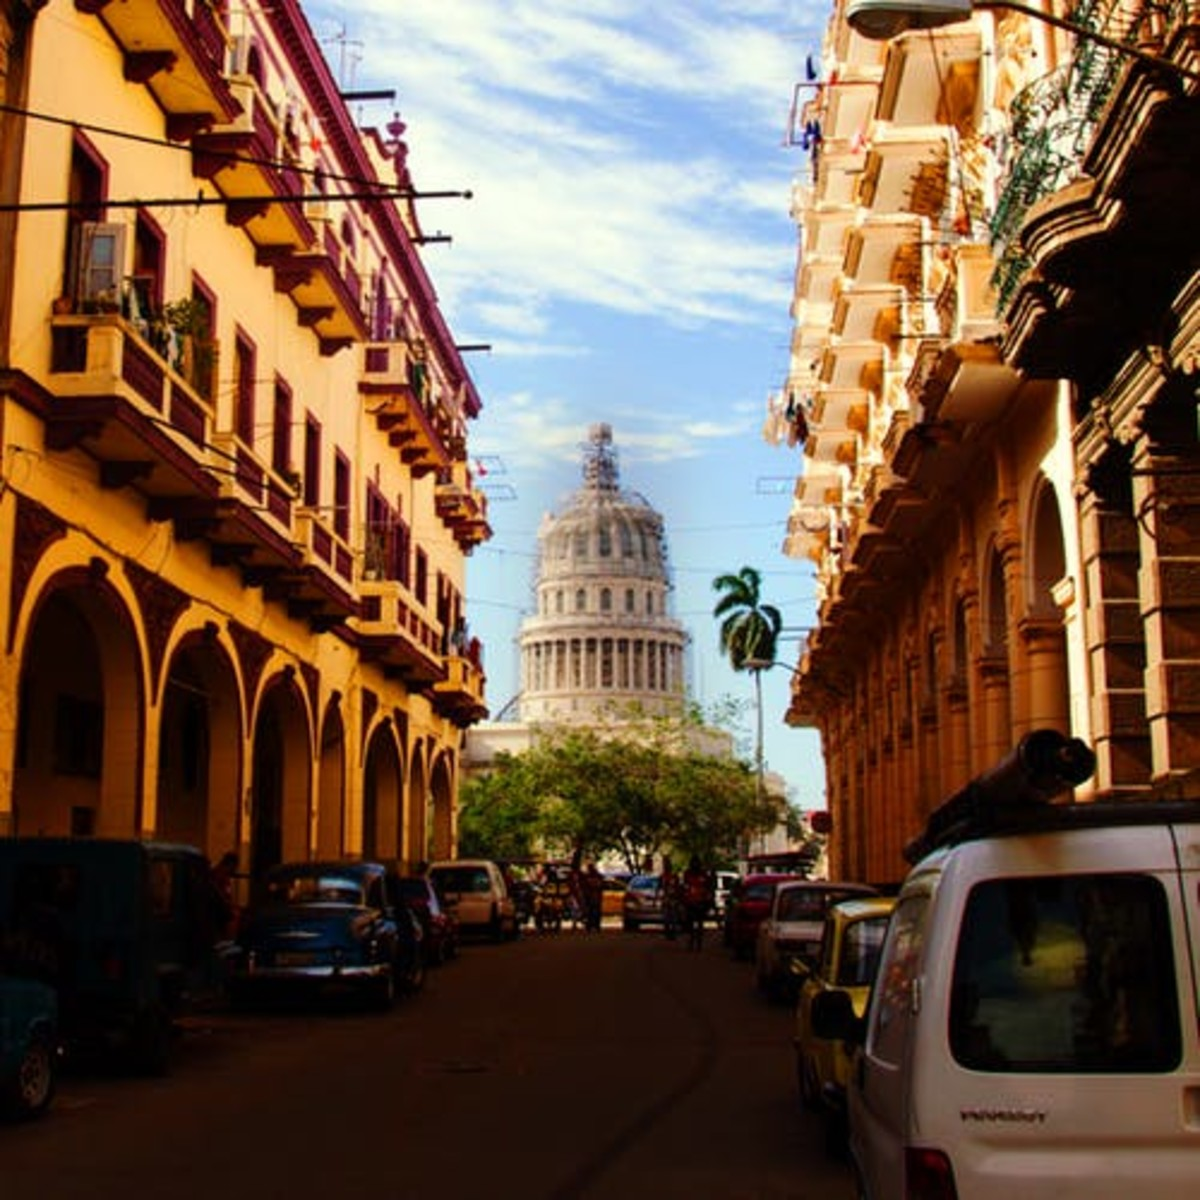 Like many Latin American cities, Havana has a old quarter, filled with many Colonial architectural masterpieces